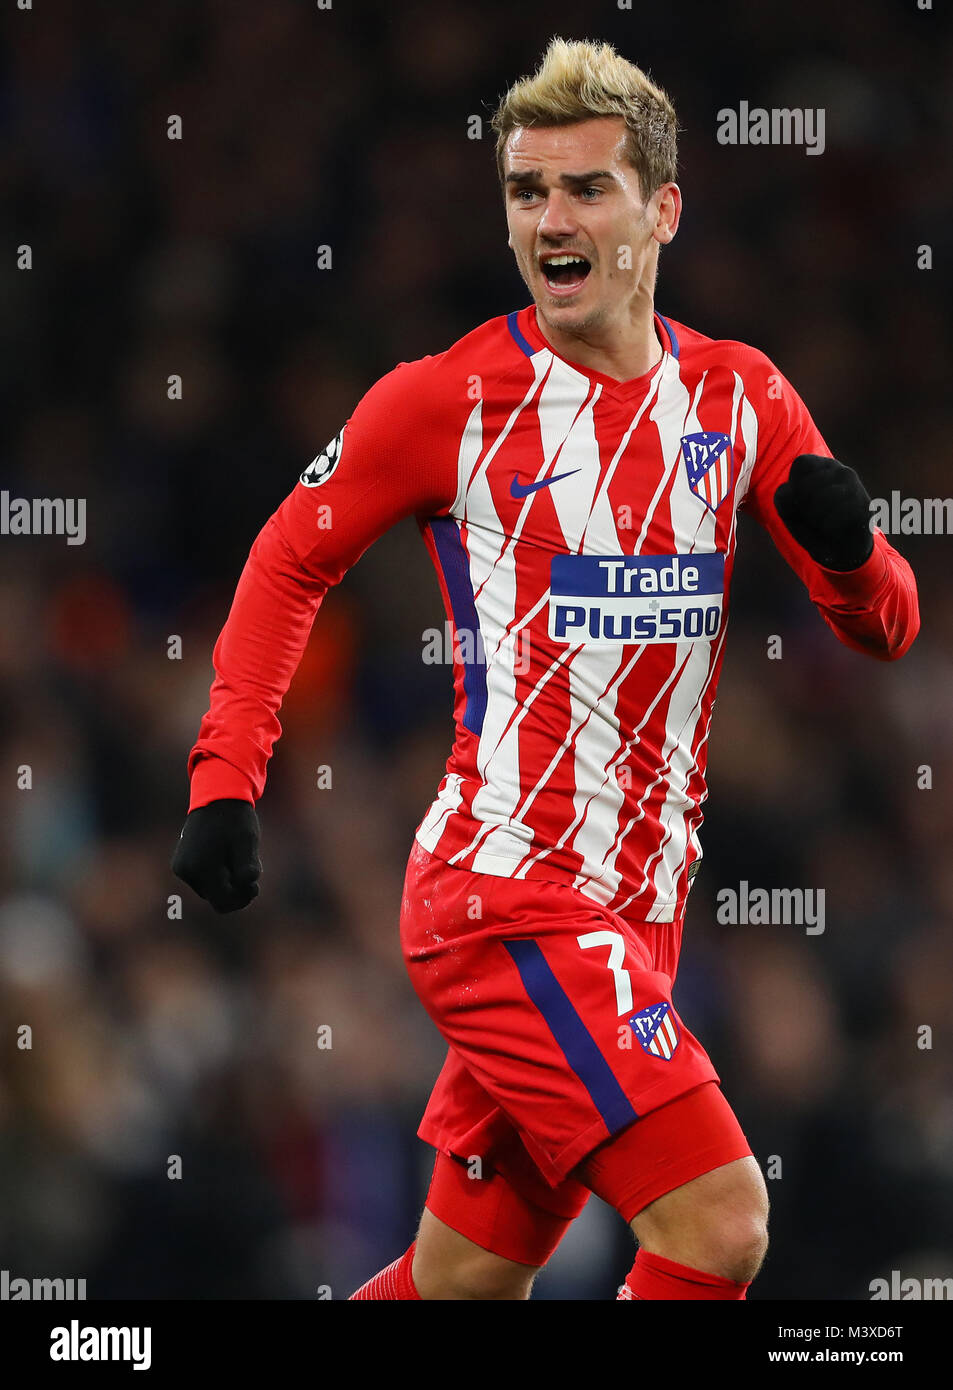 Antoine Griezmann of Atletico Madrid   Chelsea v Atletico Madrid     Antoine Griezmann of Atletico Madrid   Chelsea v Atletico Madrid  UEFA  Champions League  Stamford Bridge  London   5th December 2017